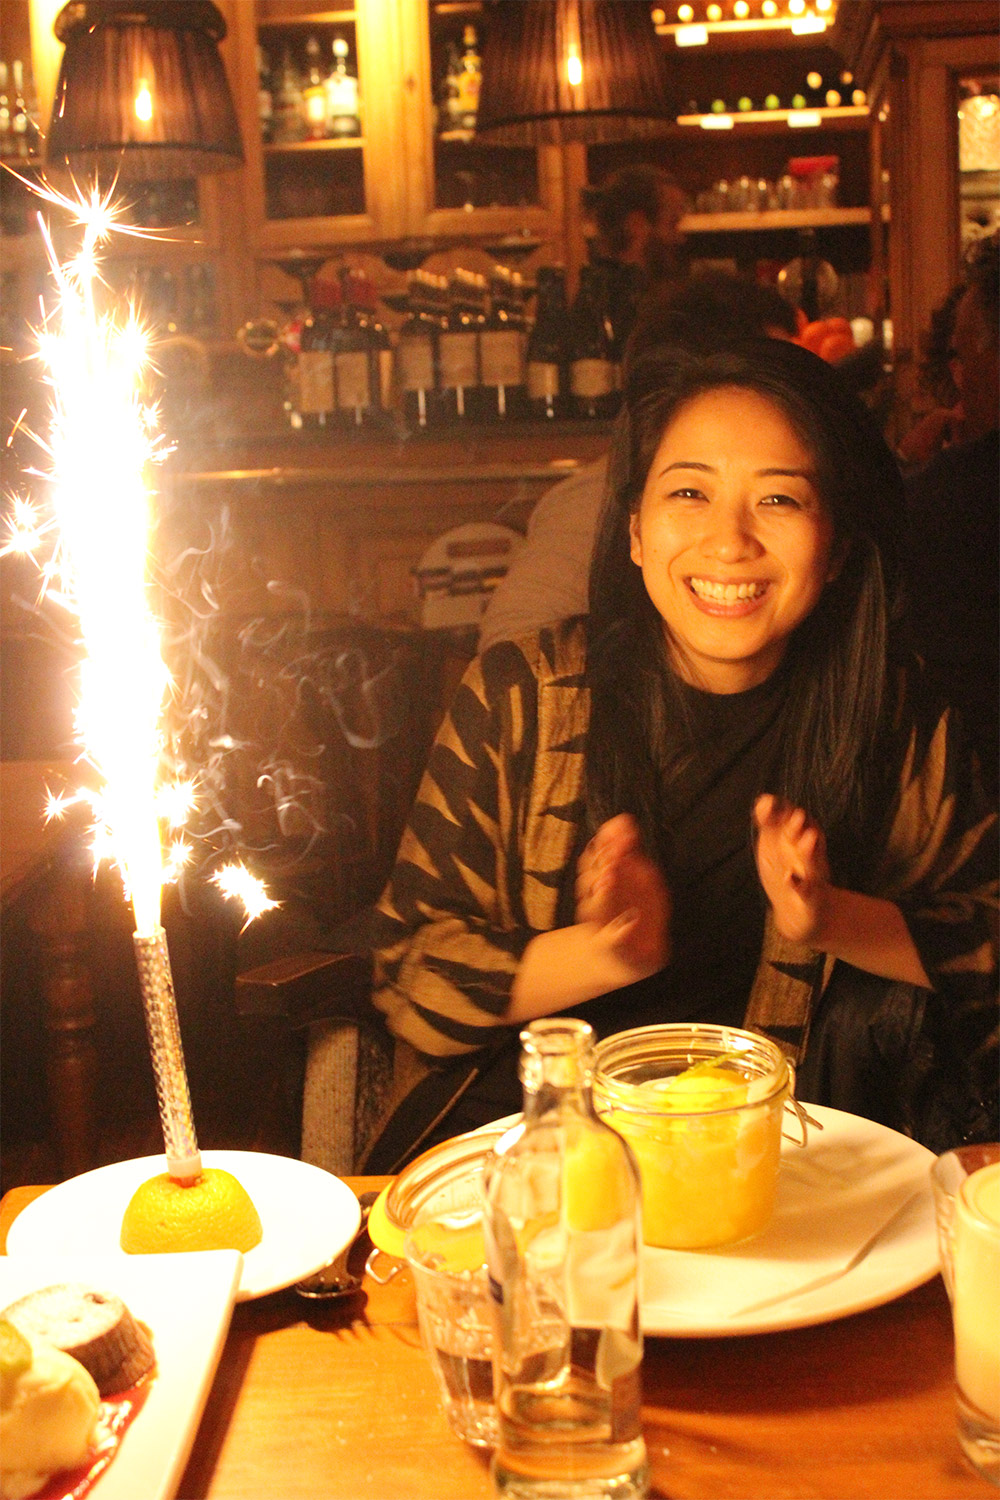 Humpheries-Amersfoort-birthday-dinner-The-Wong-Janice.jpg